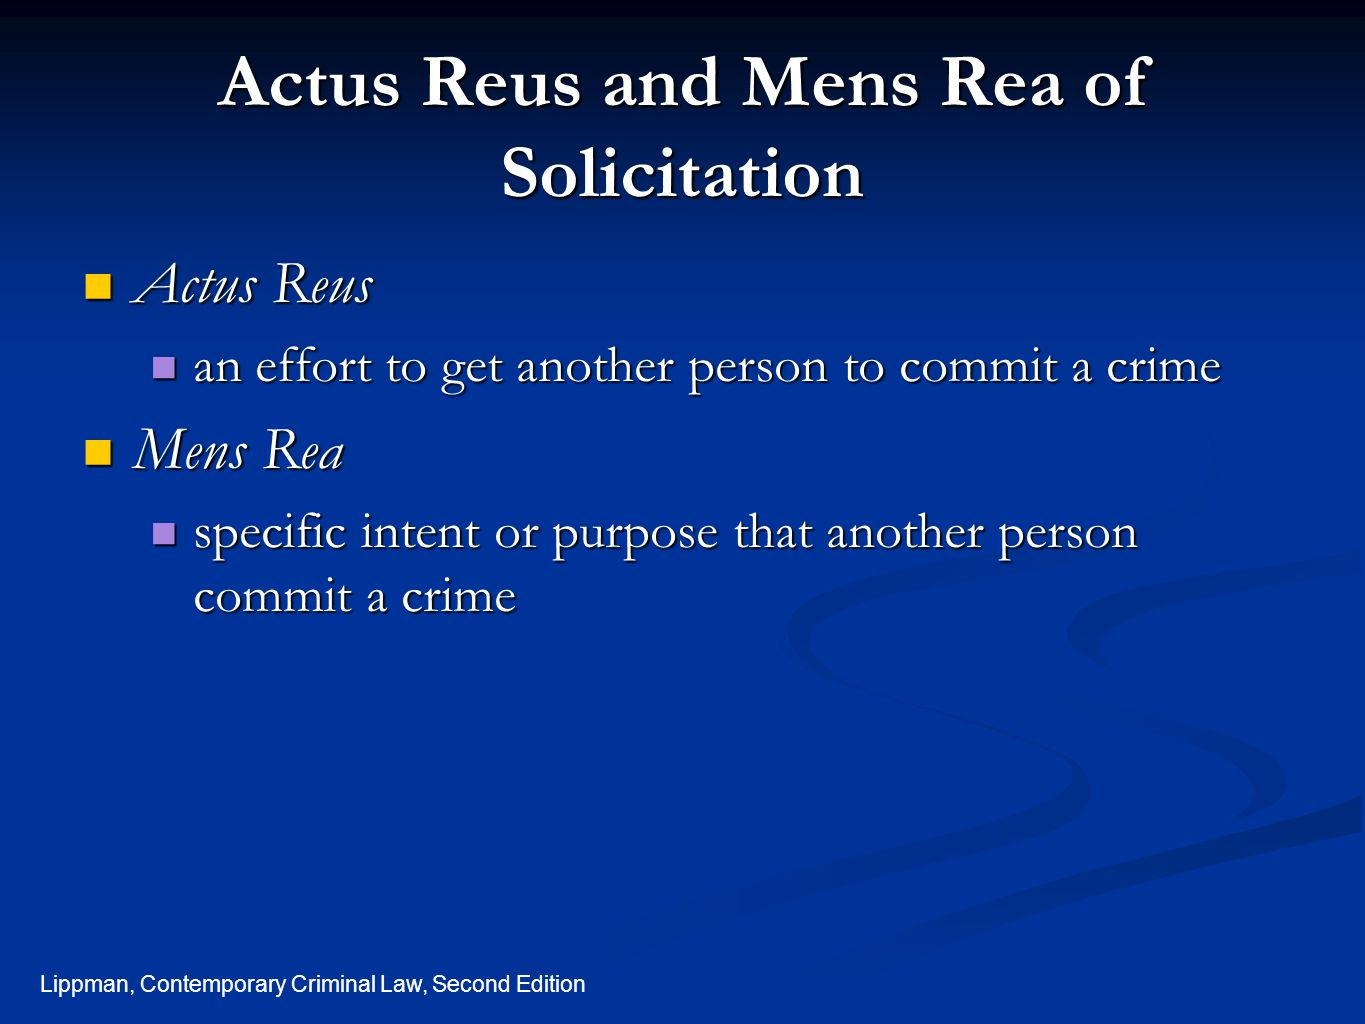 Actus Reus and Mens Rea of Solicitation